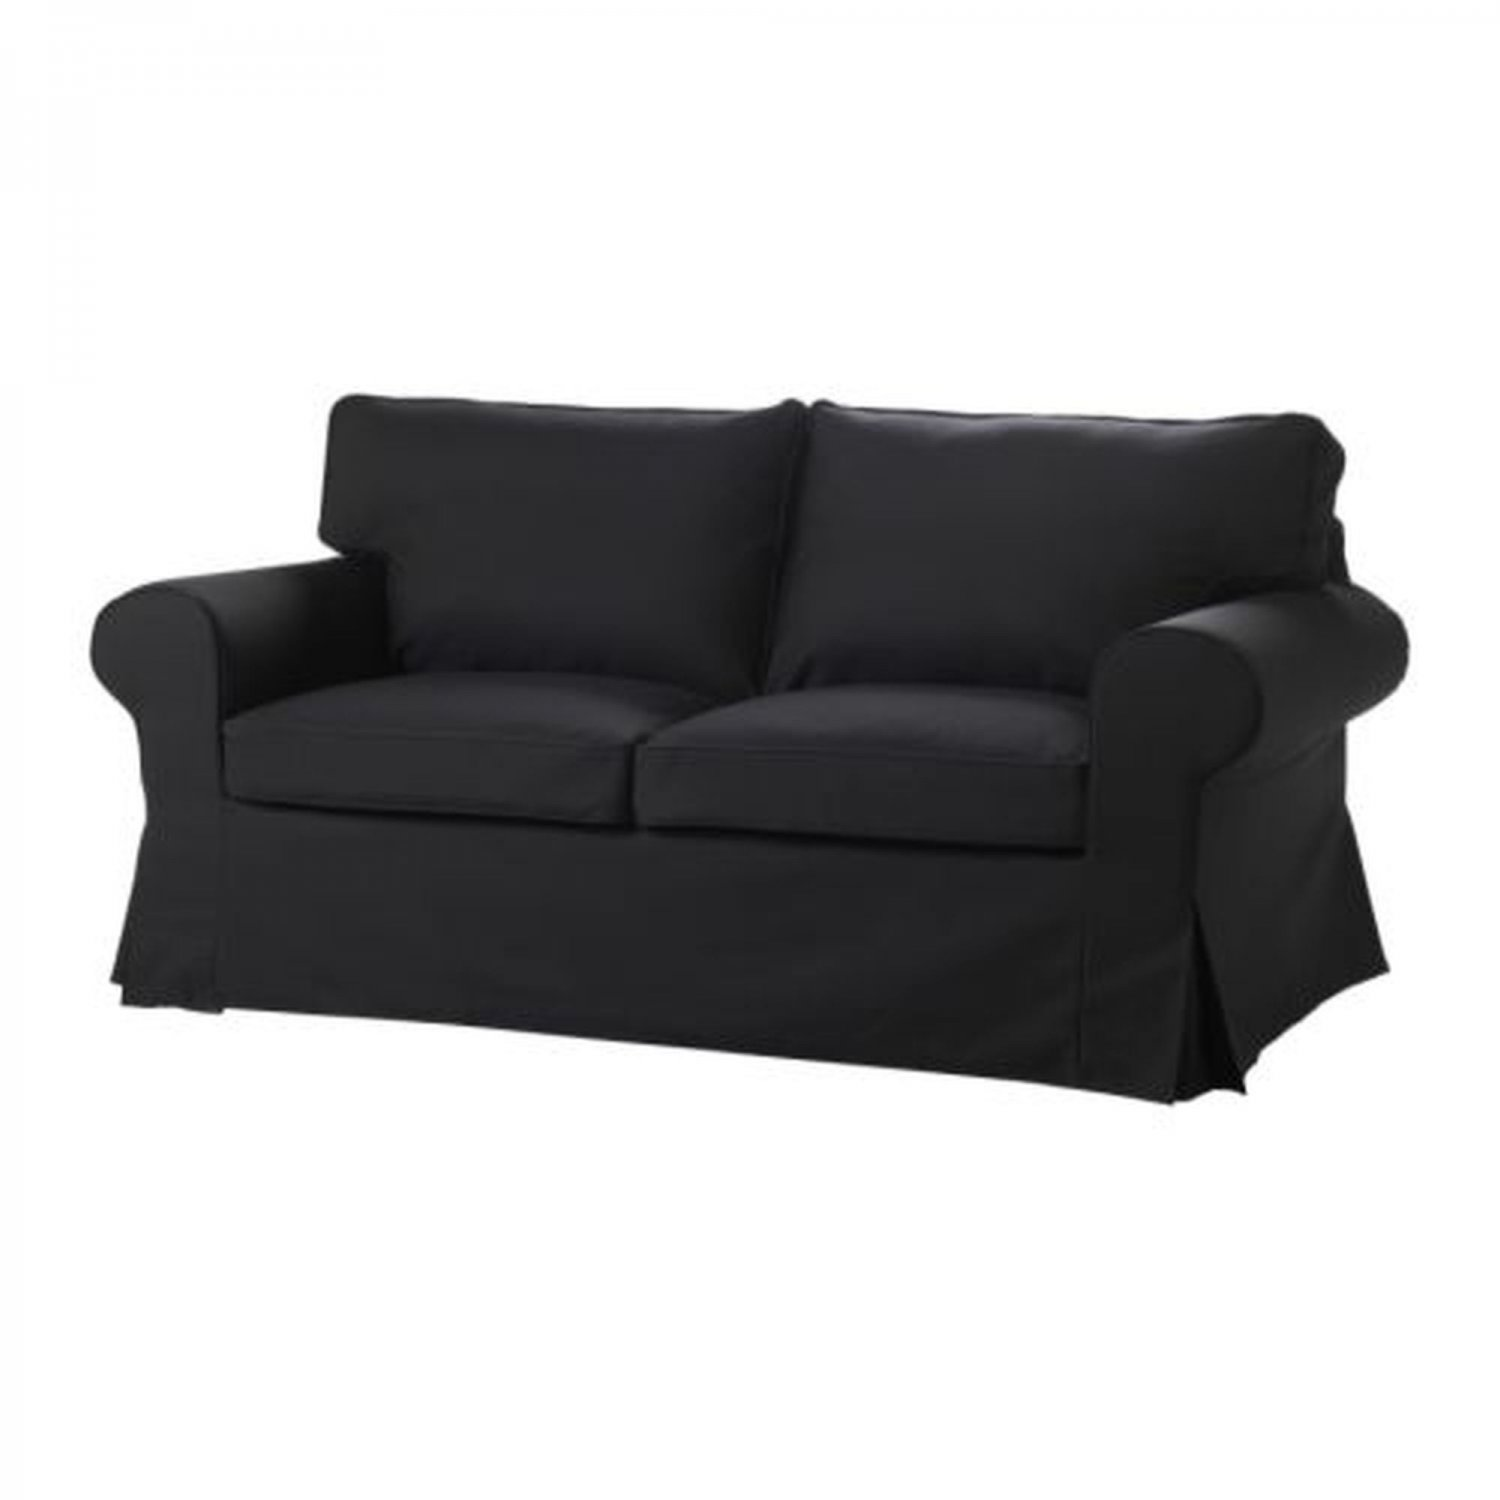 ikea ektorp sofa bed slipcover sofabed cover idemo black. Black Bedroom Furniture Sets. Home Design Ideas